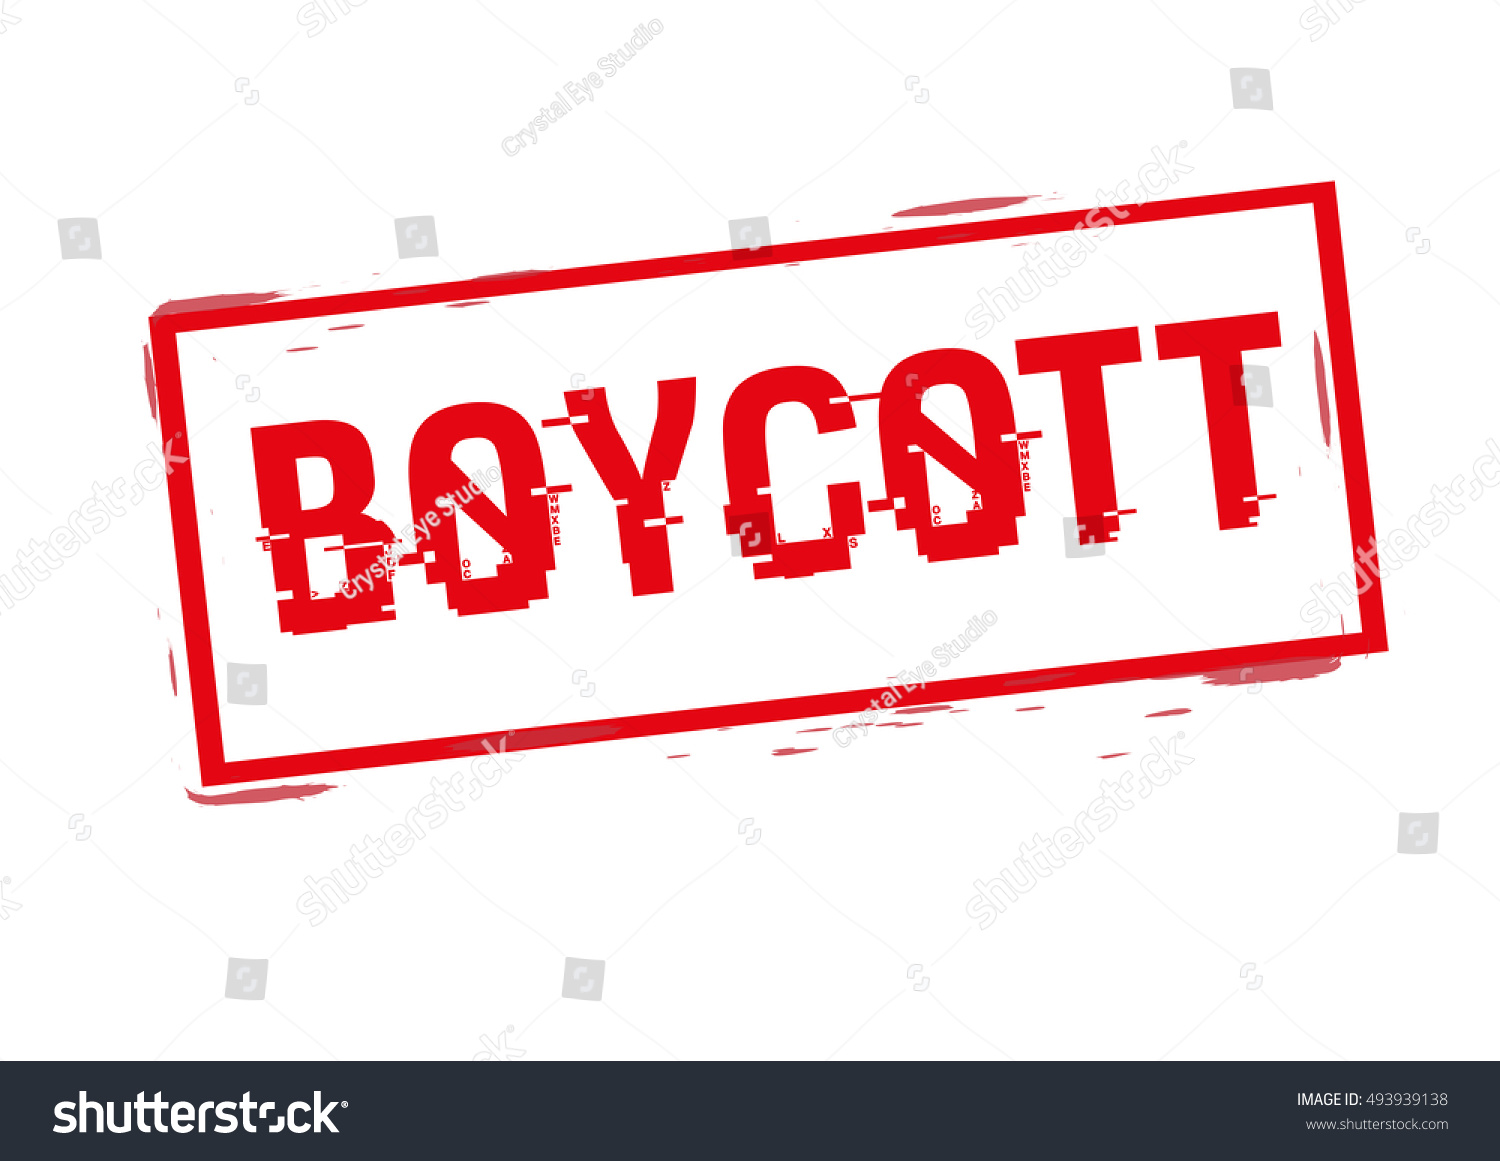 Boycott clipart clipart royalty free download Boycott clipart 9 » Clipart Station clipart royalty free download